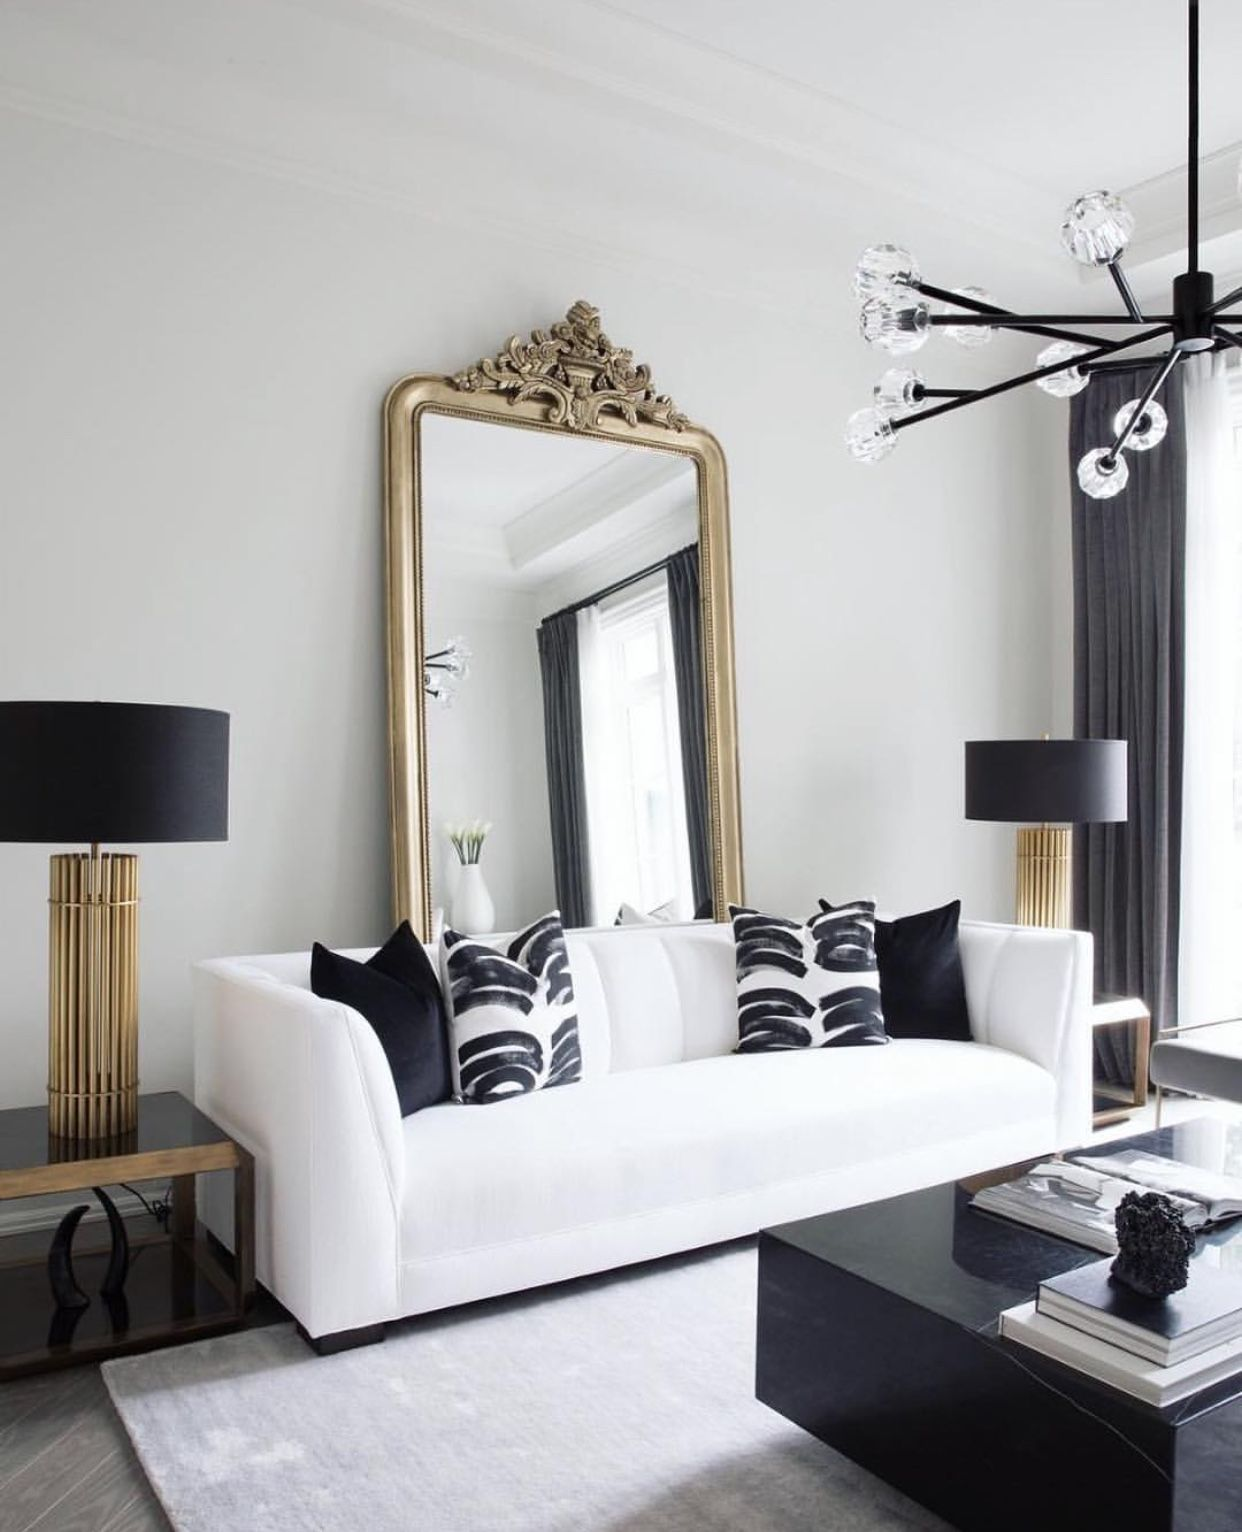 Black Bold Lines Stand Against Pristine White In This Horizontally